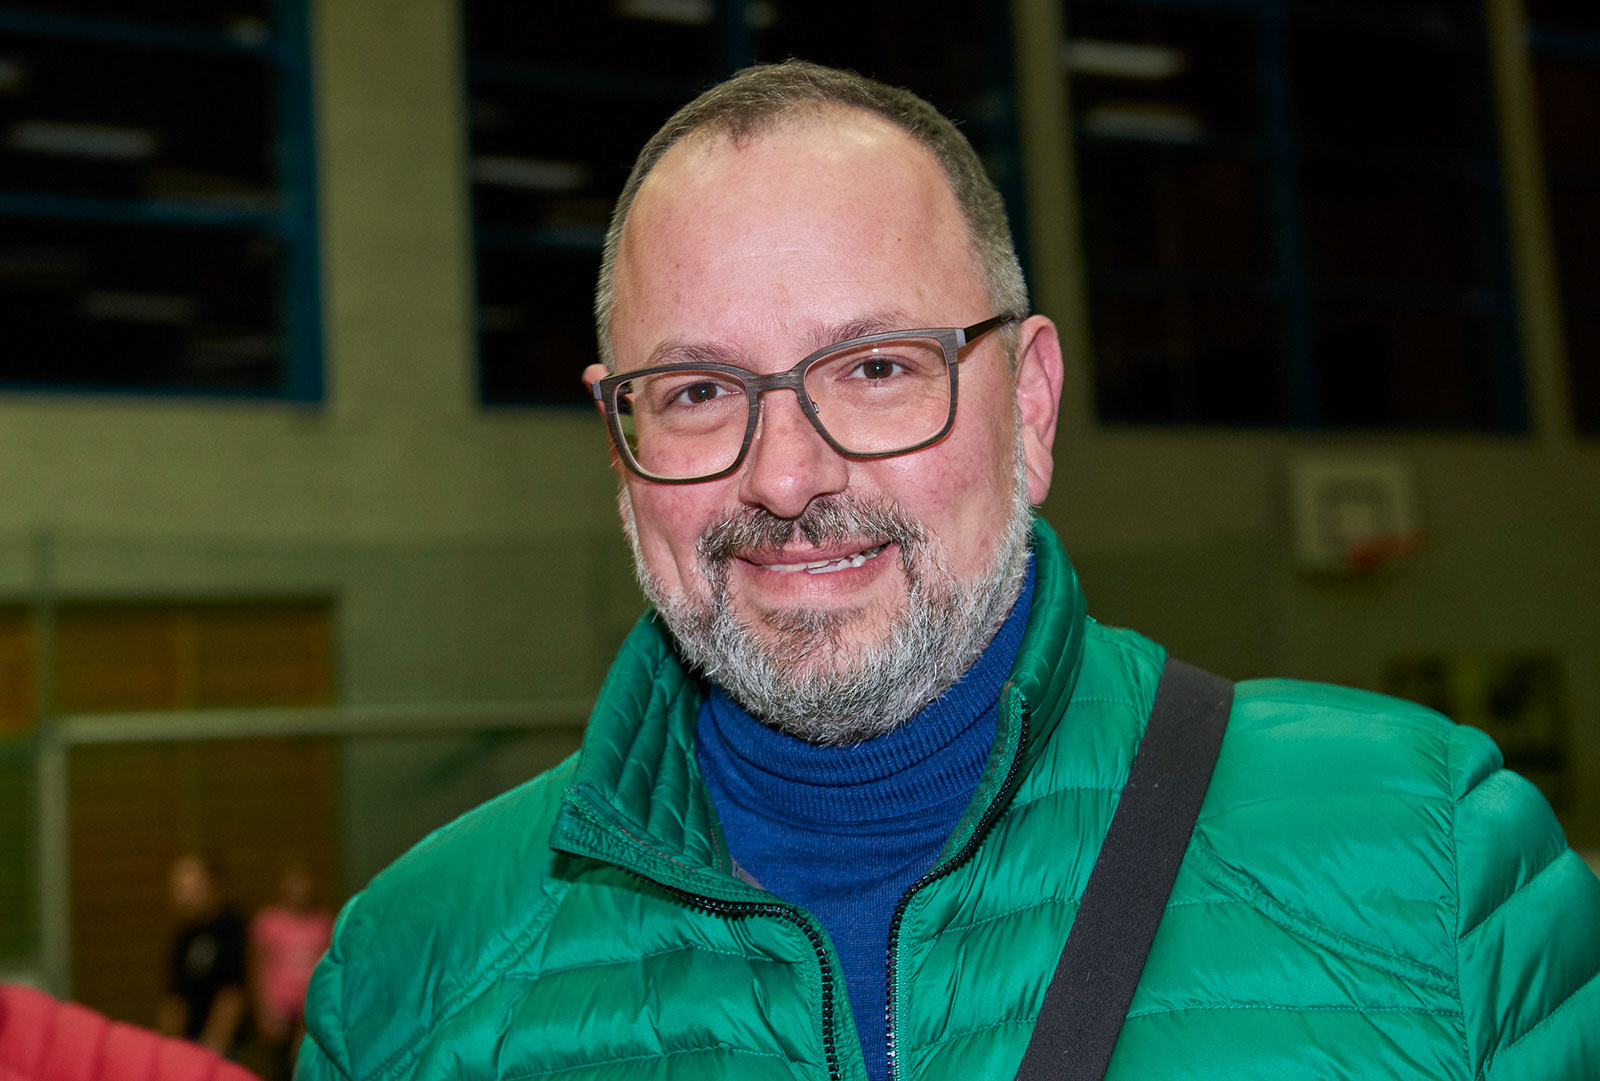 Bodensee-Cup_20171110_202152.jpg